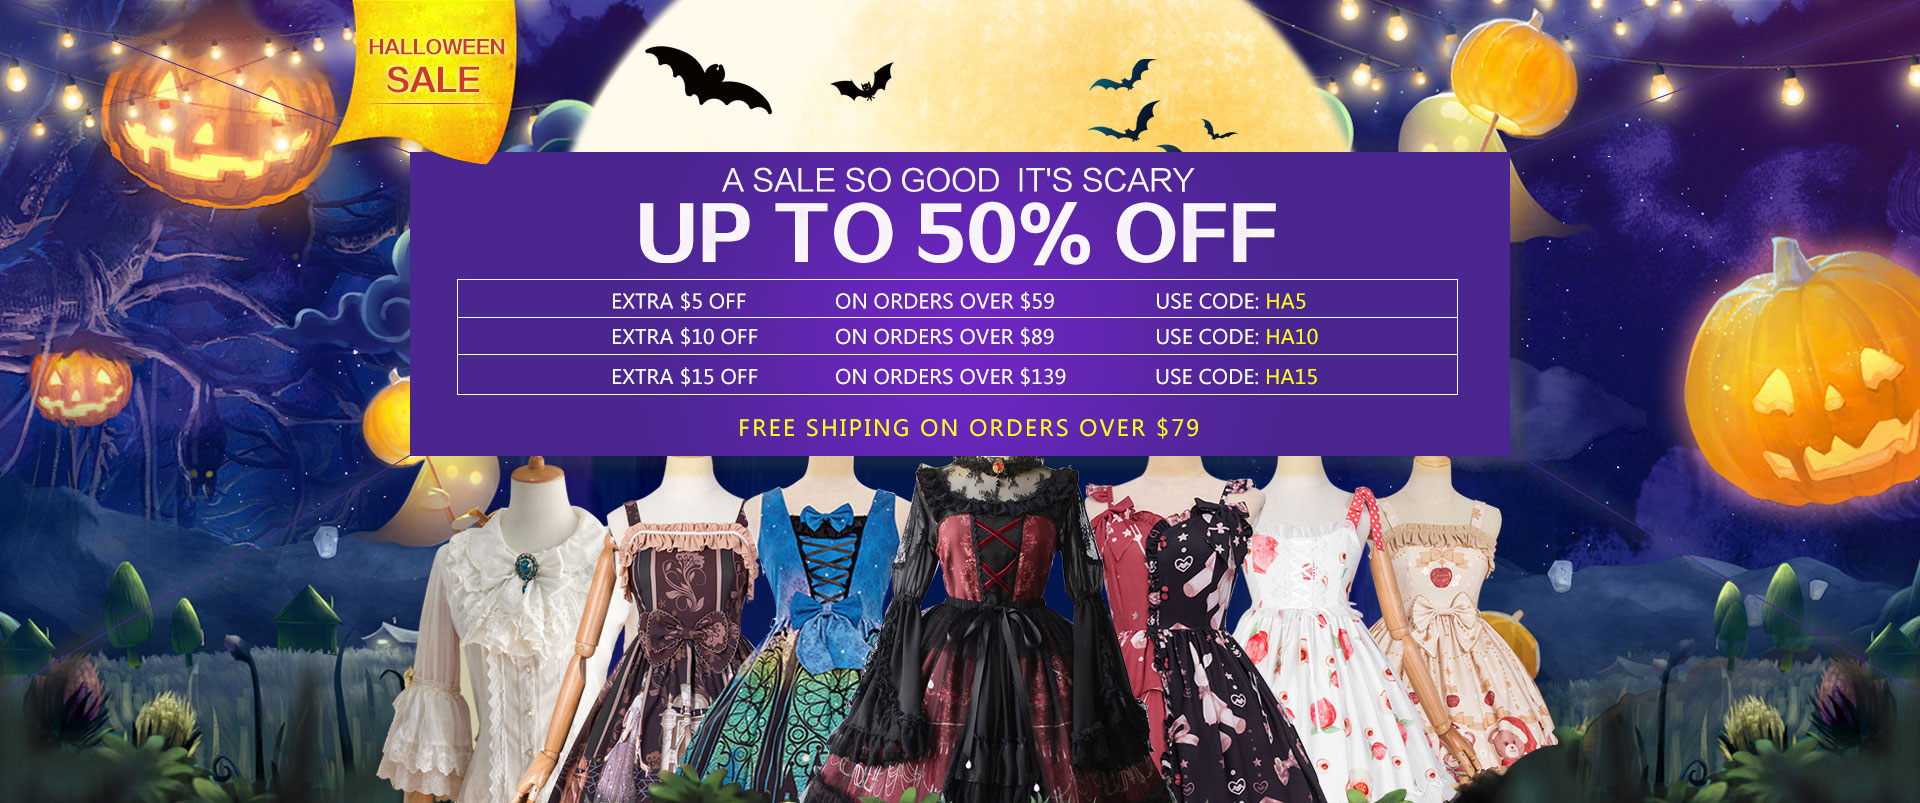 2020 Halloween Sales & Deals